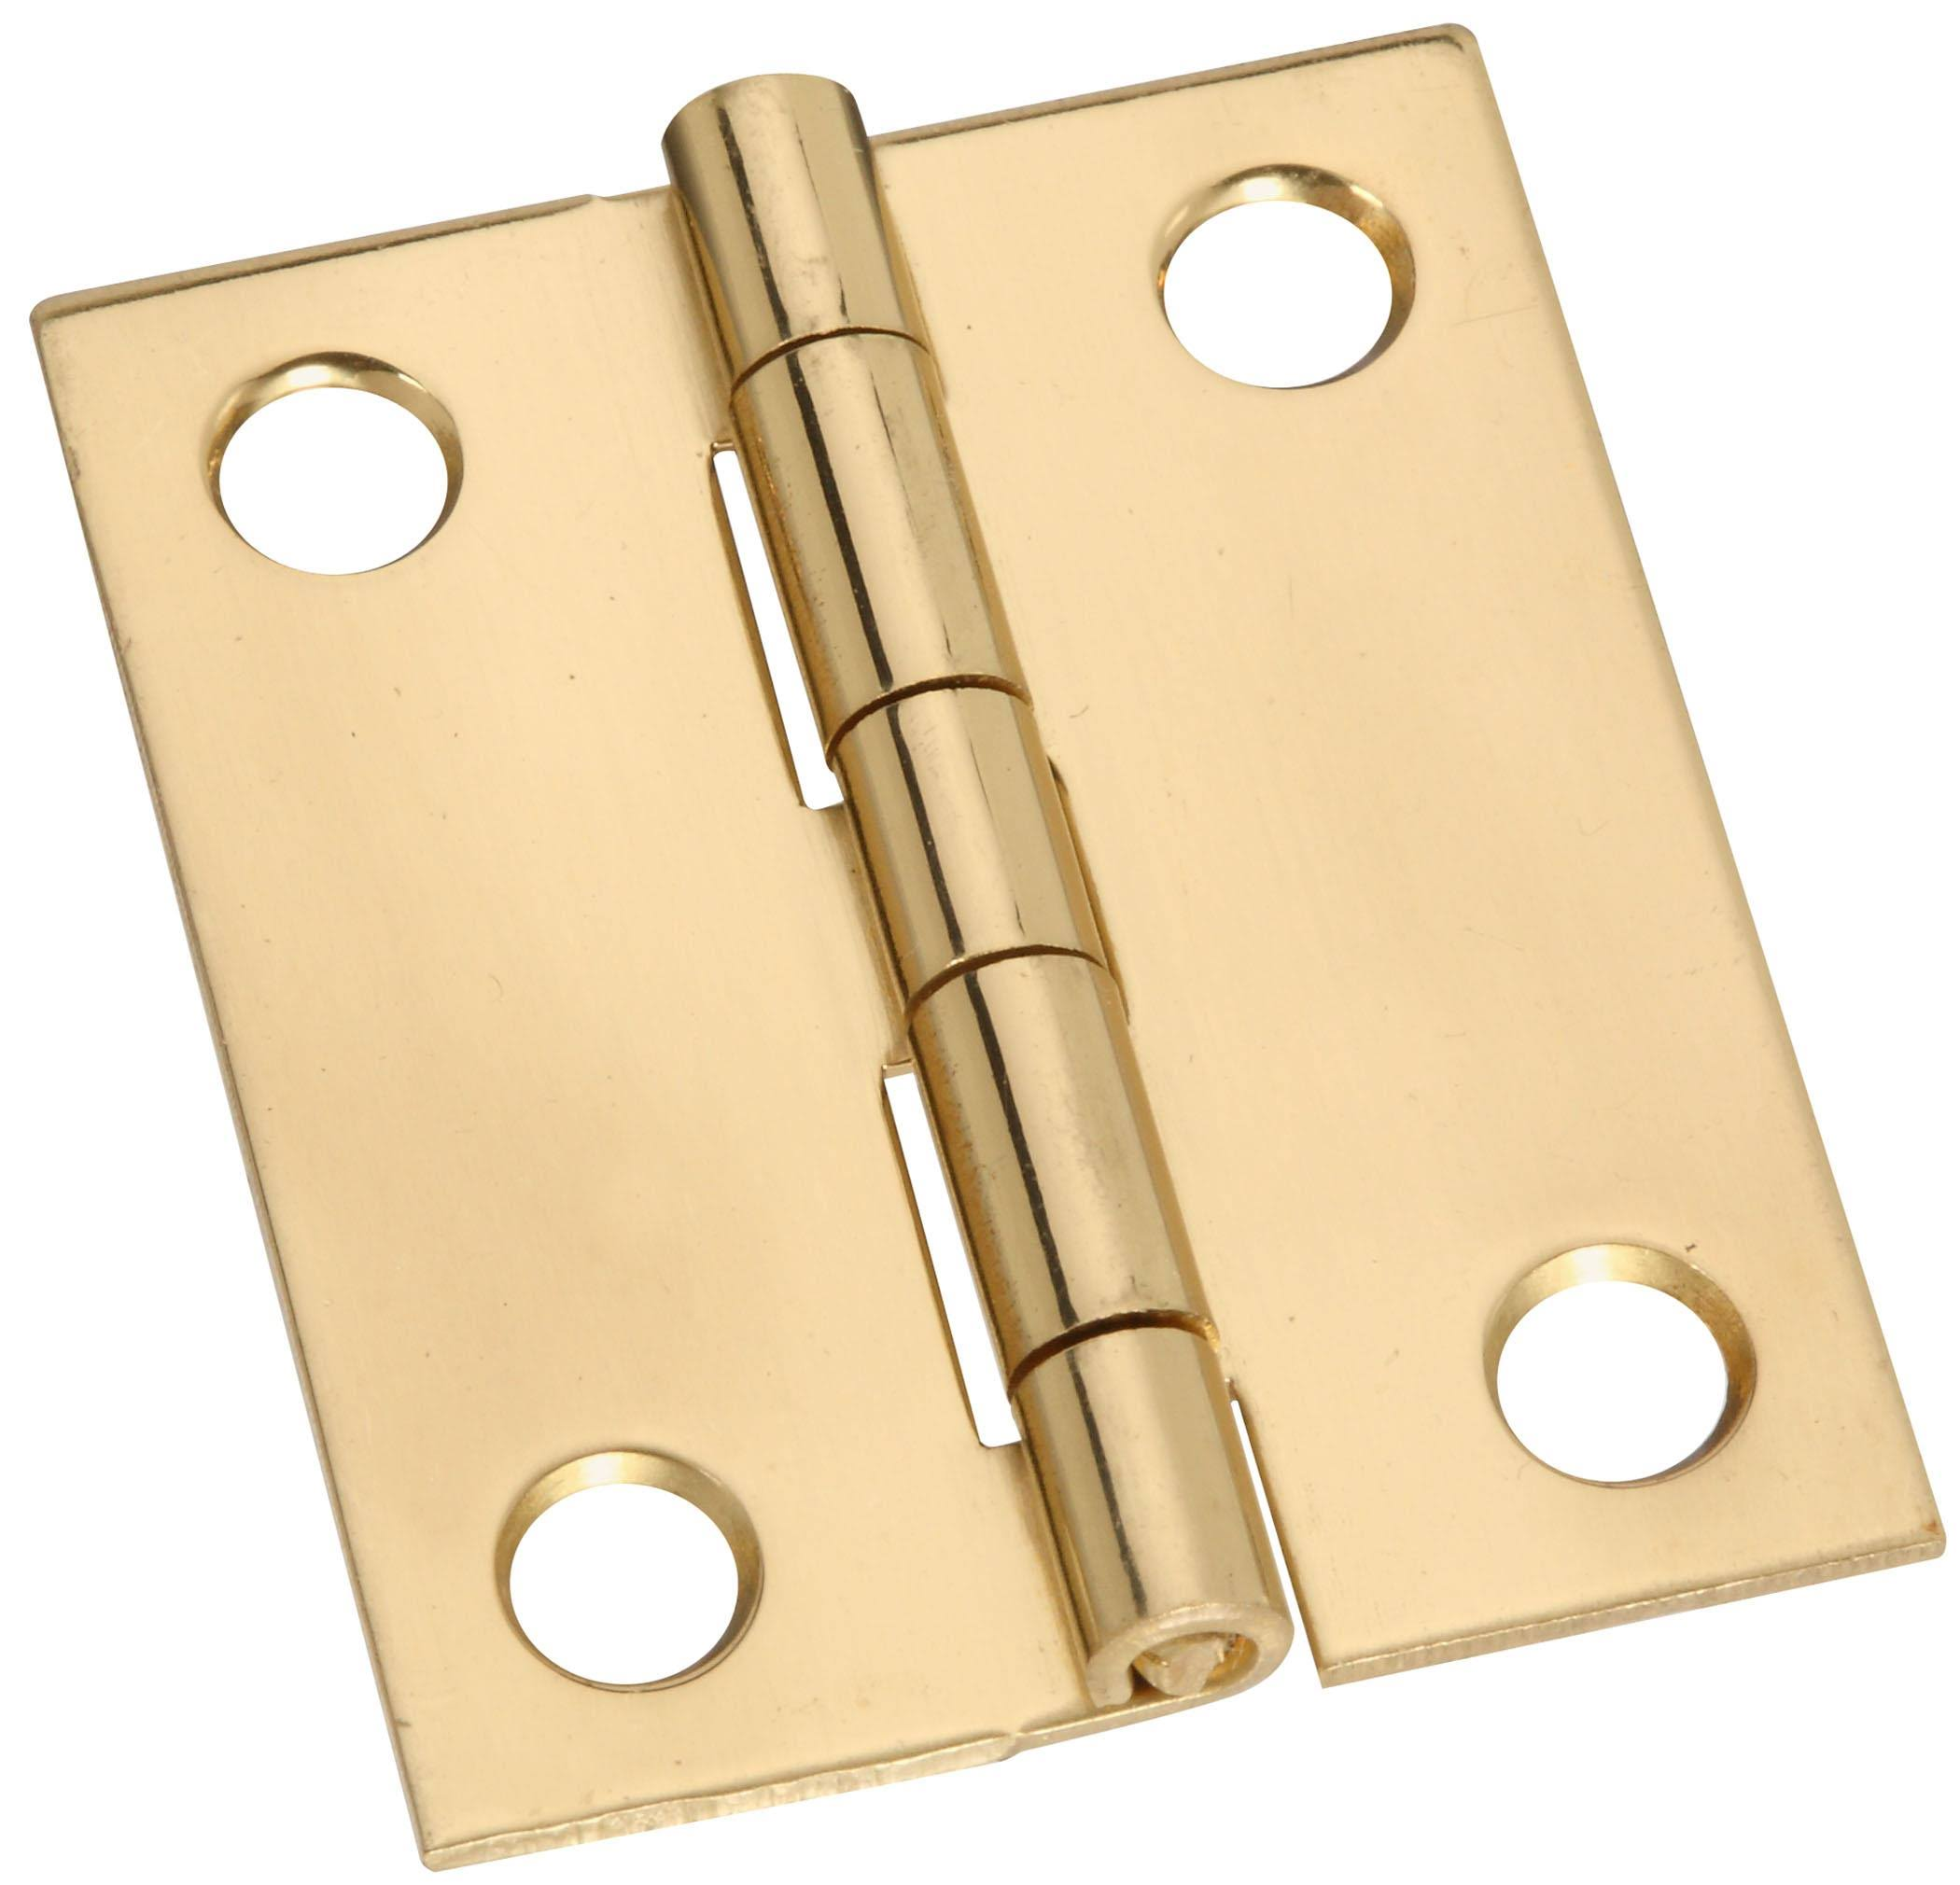 "National Hardware Broad Hinges - 1 1/2"" x 1 1/4"", Brass"